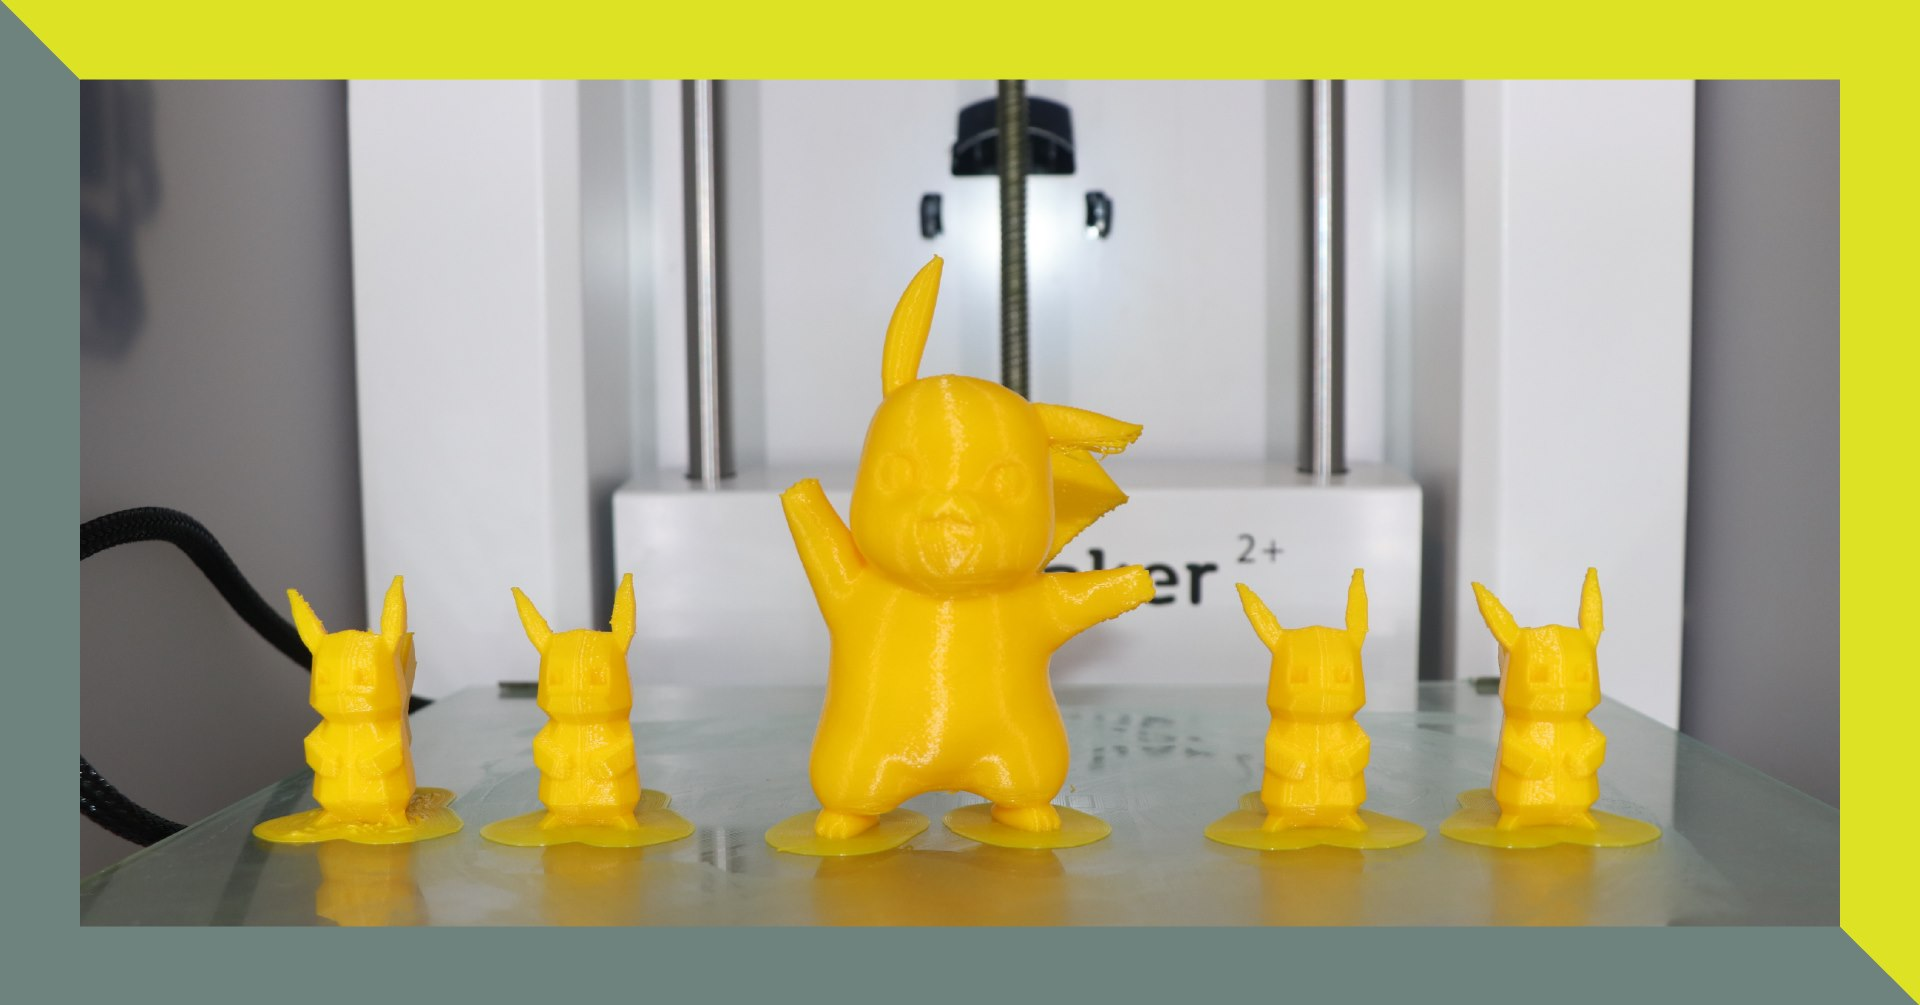 3D modelling & printing open day